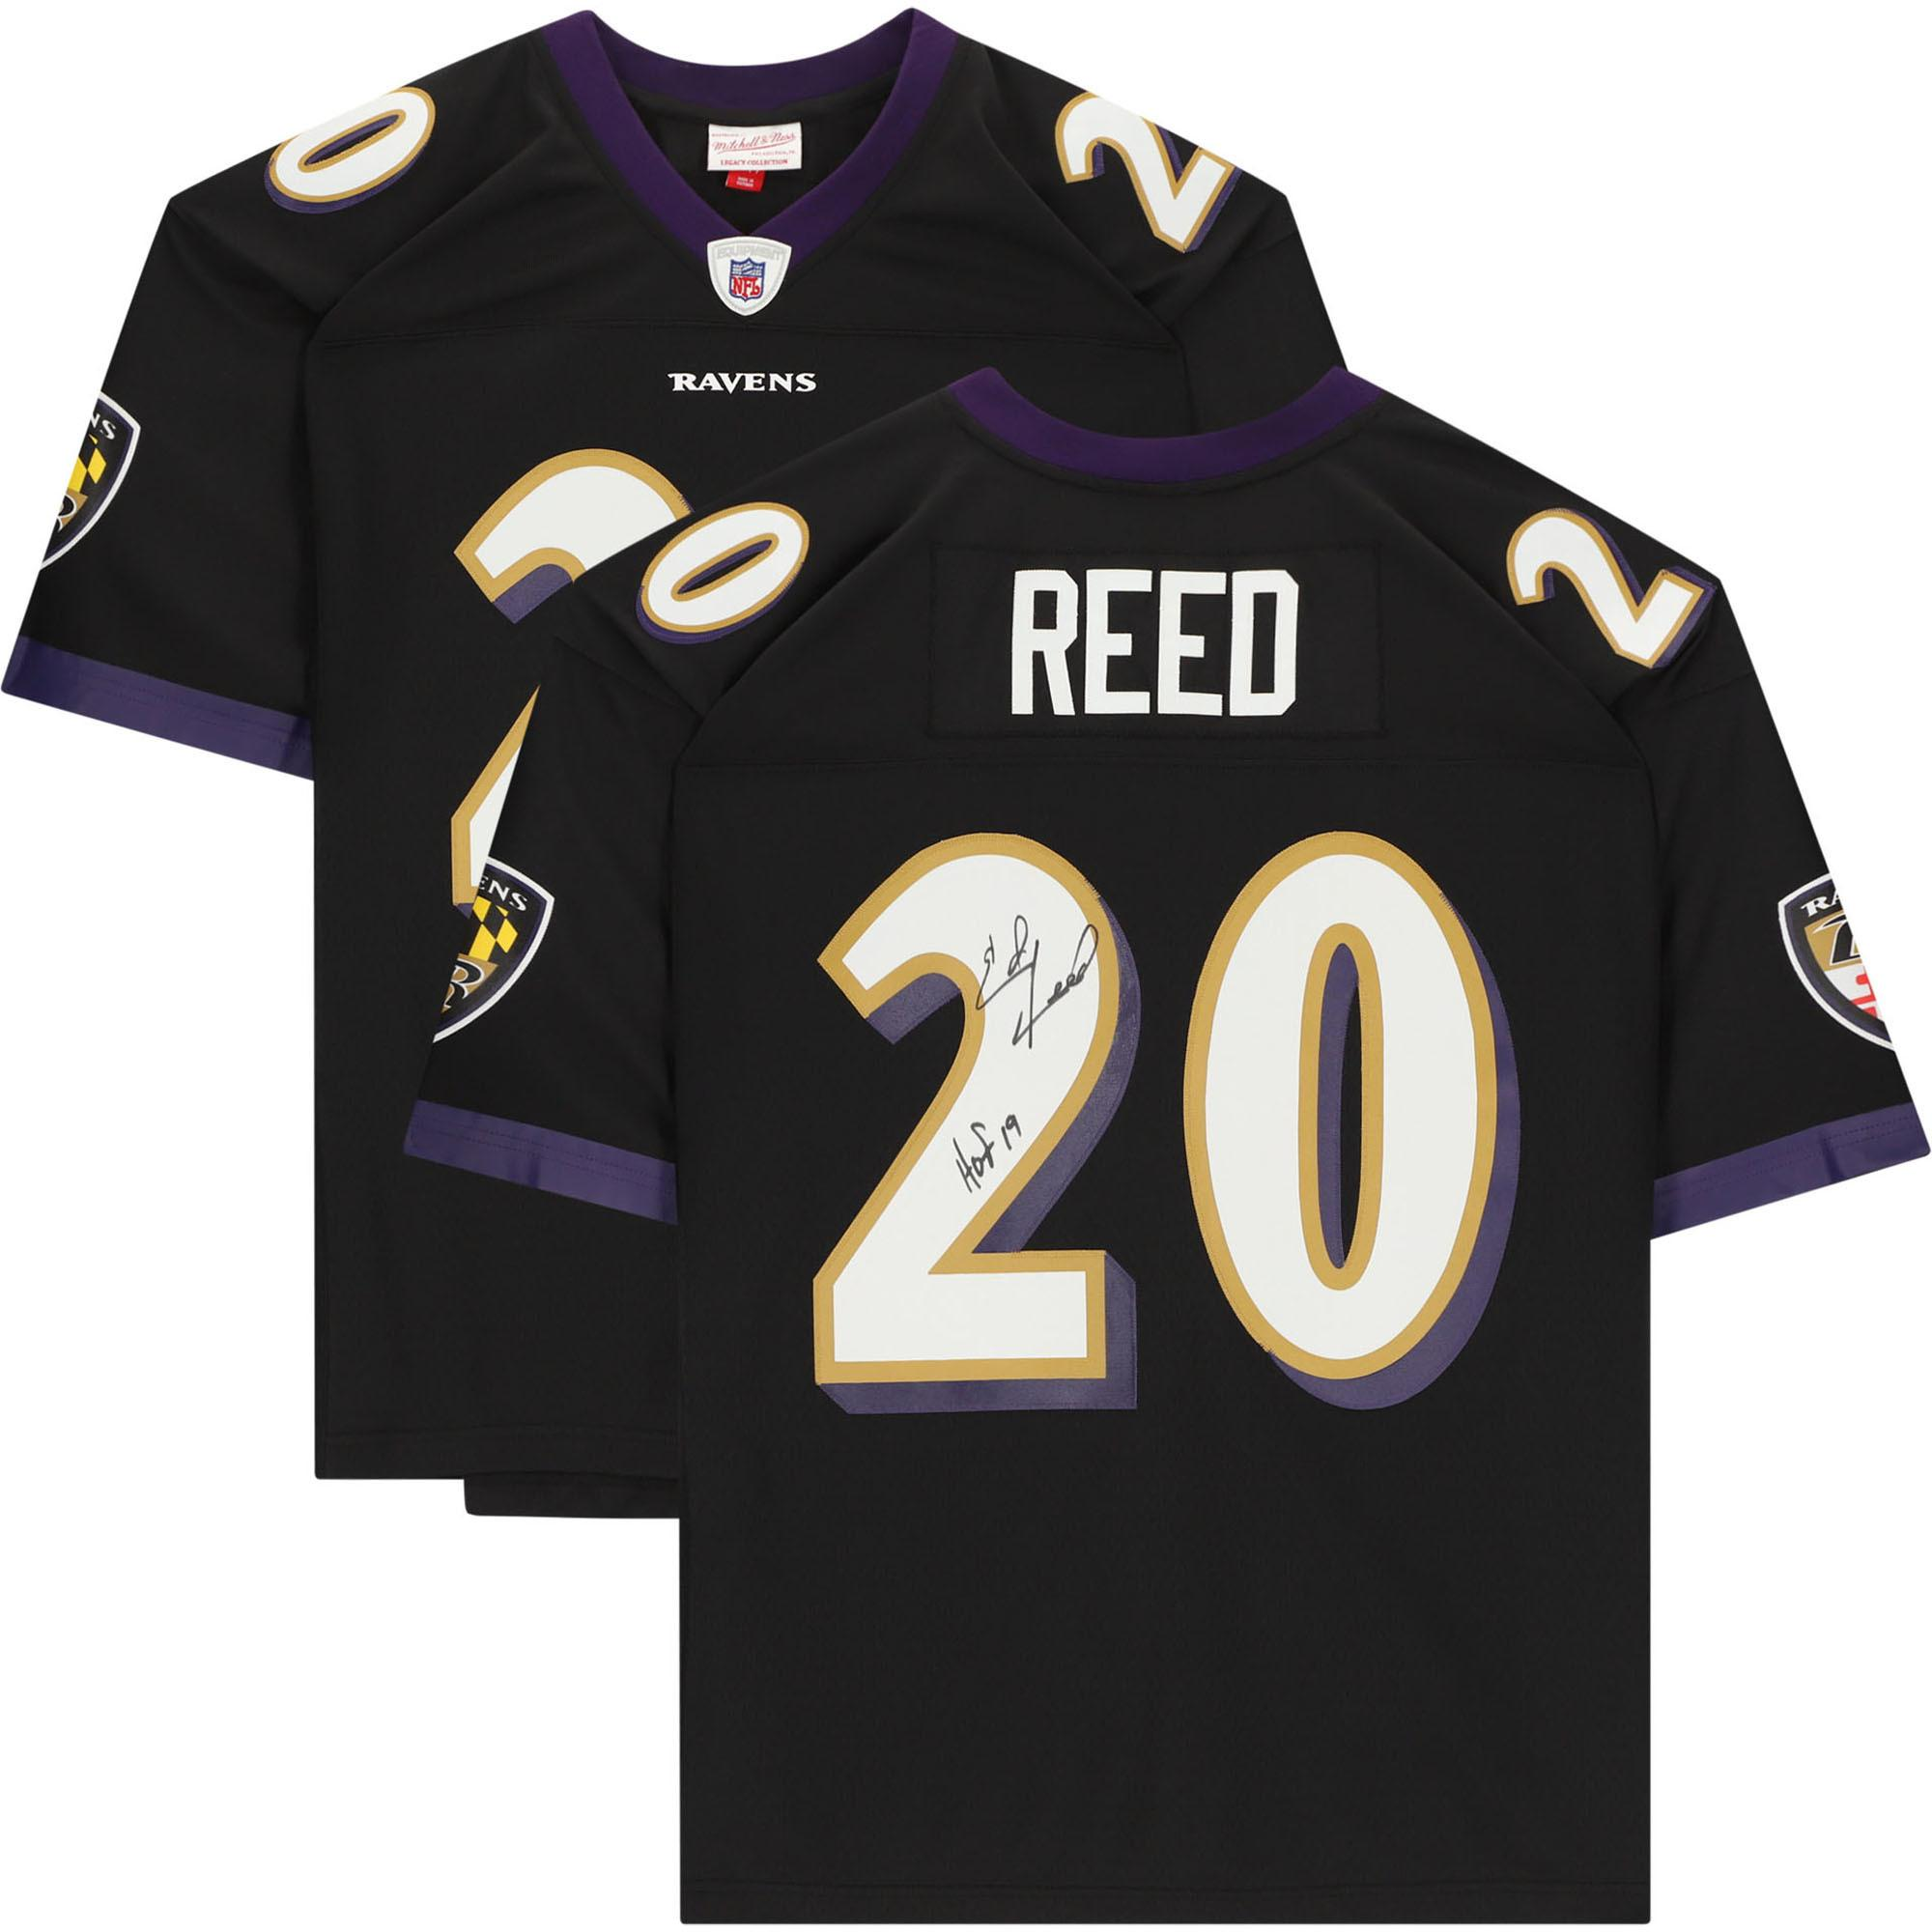 Ed Reed Baltimore Ravens Autographed Black Mitchell & Ness Replica Jersey with